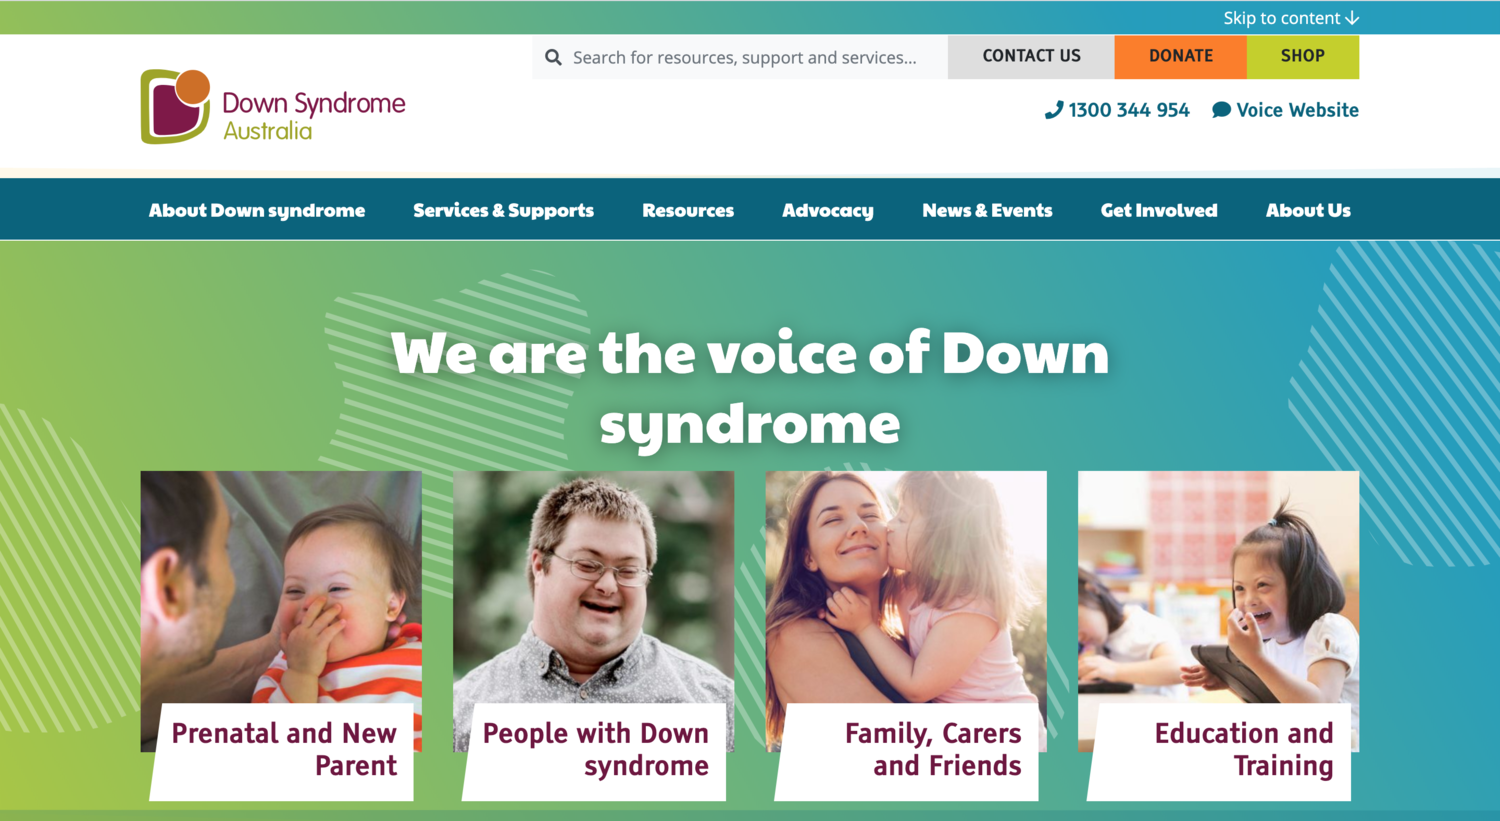 Down syndrome Australia website home page